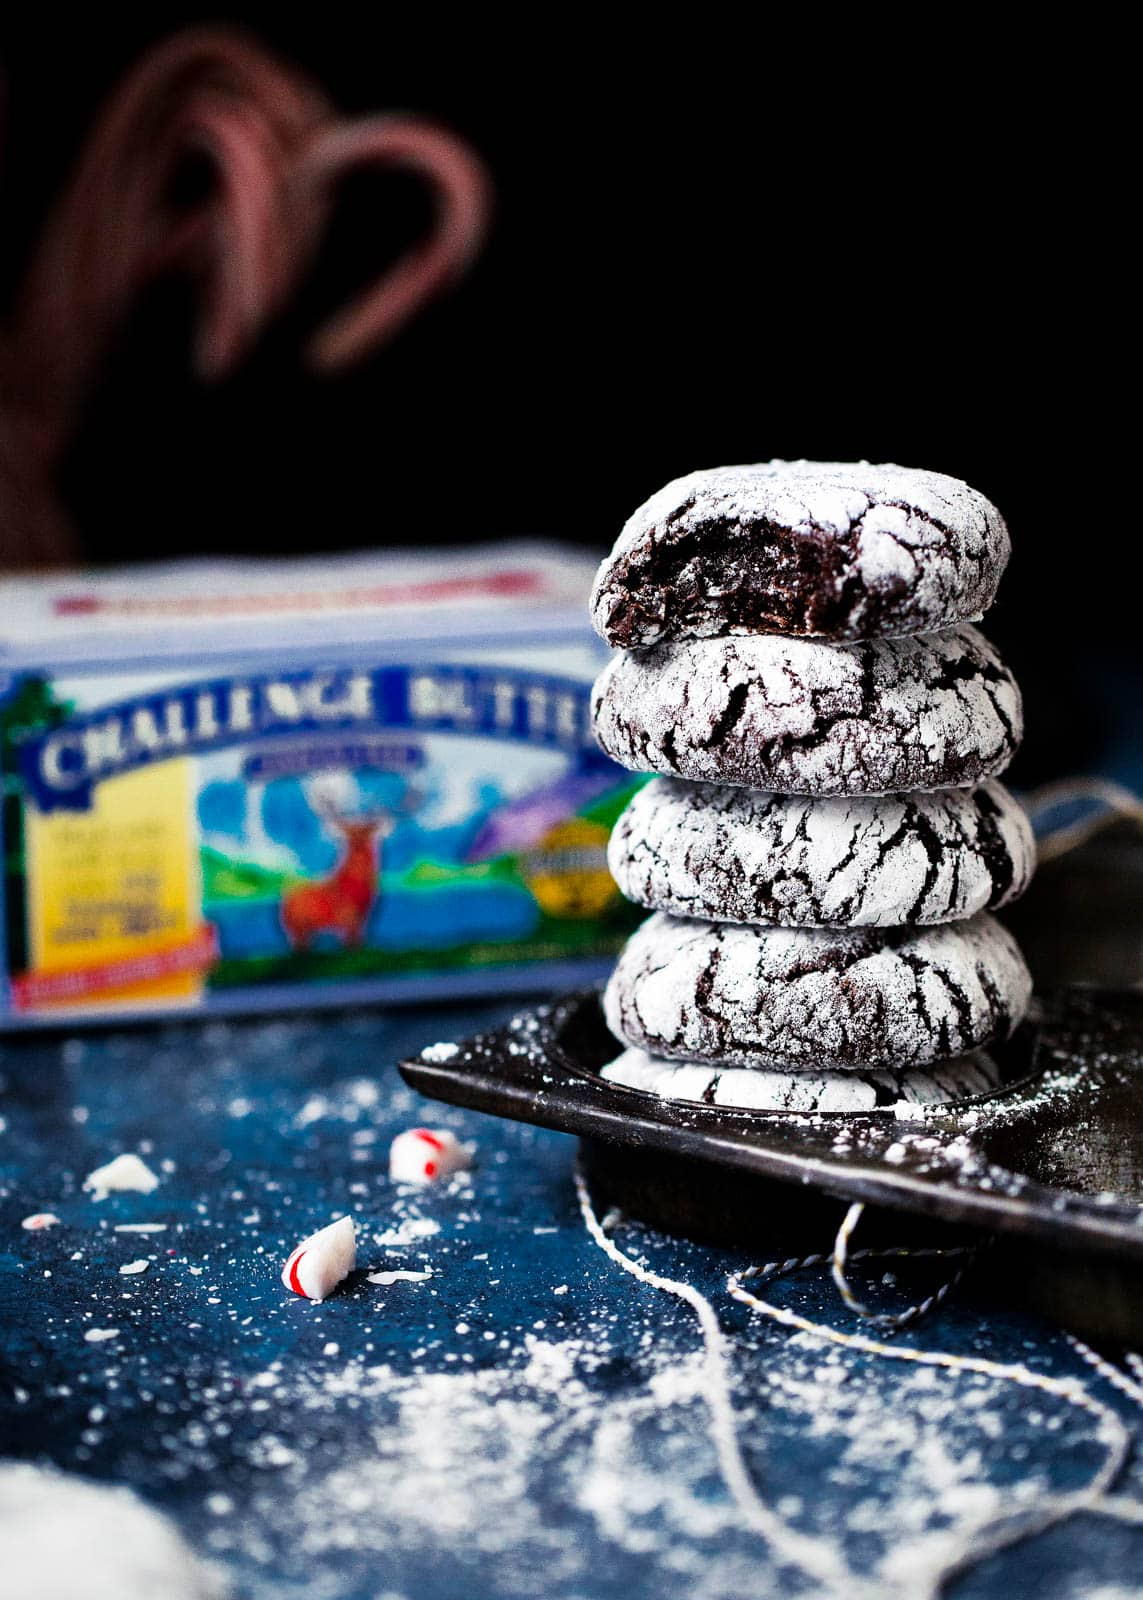 Peppermint Crinkle Cookies so fudgy and brownie-like you may end up like me and make three batches in a week.